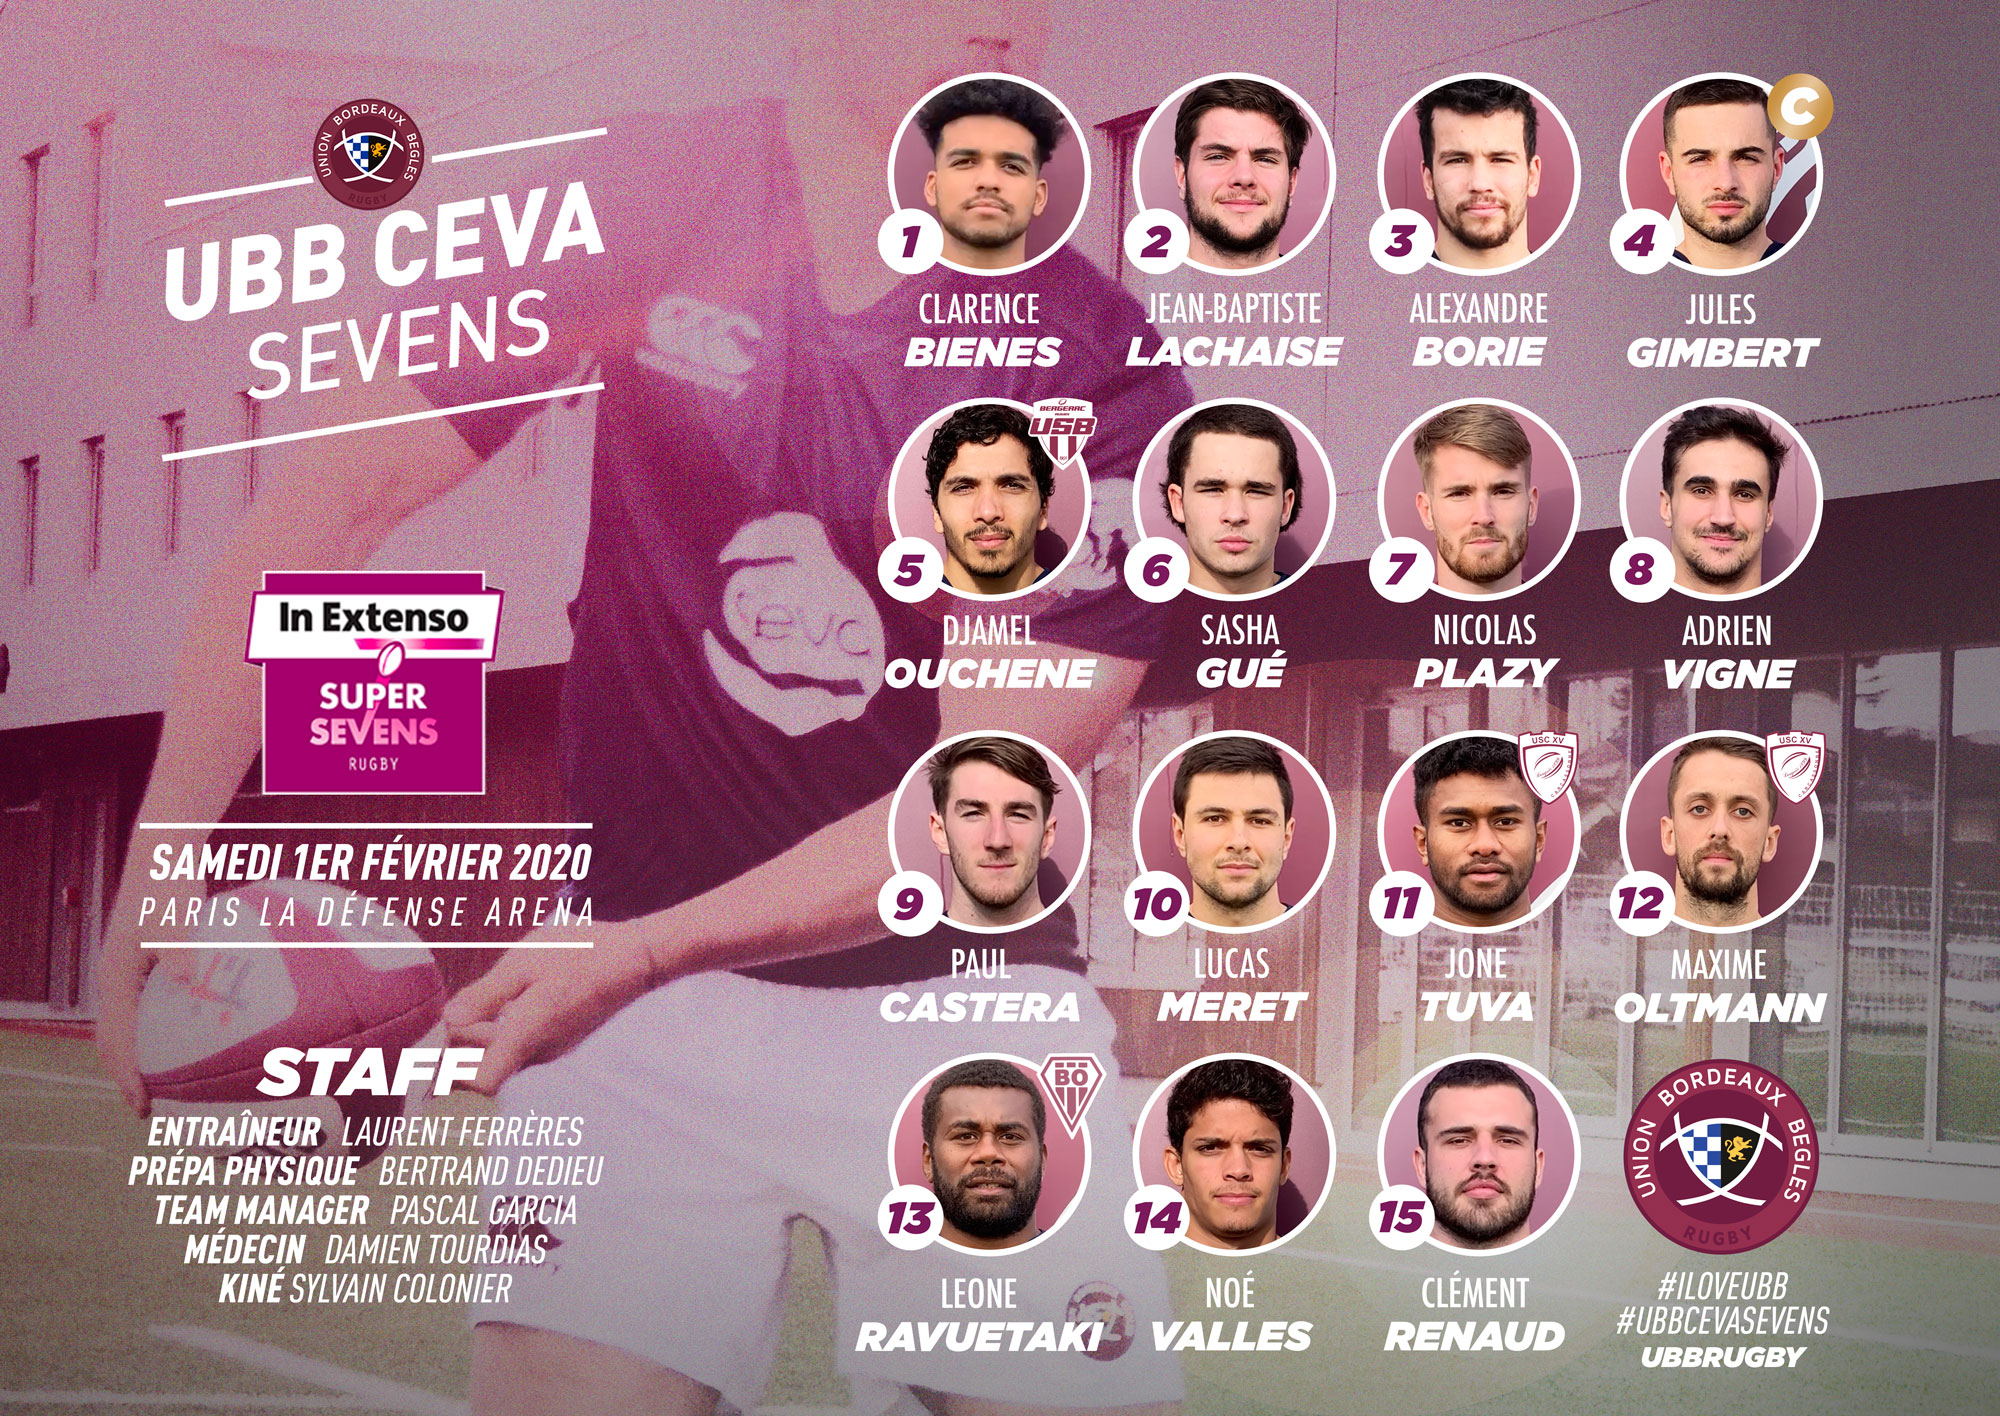 Equipe UBB Ceva Sevens - 2019 - In Extenso Supersevens